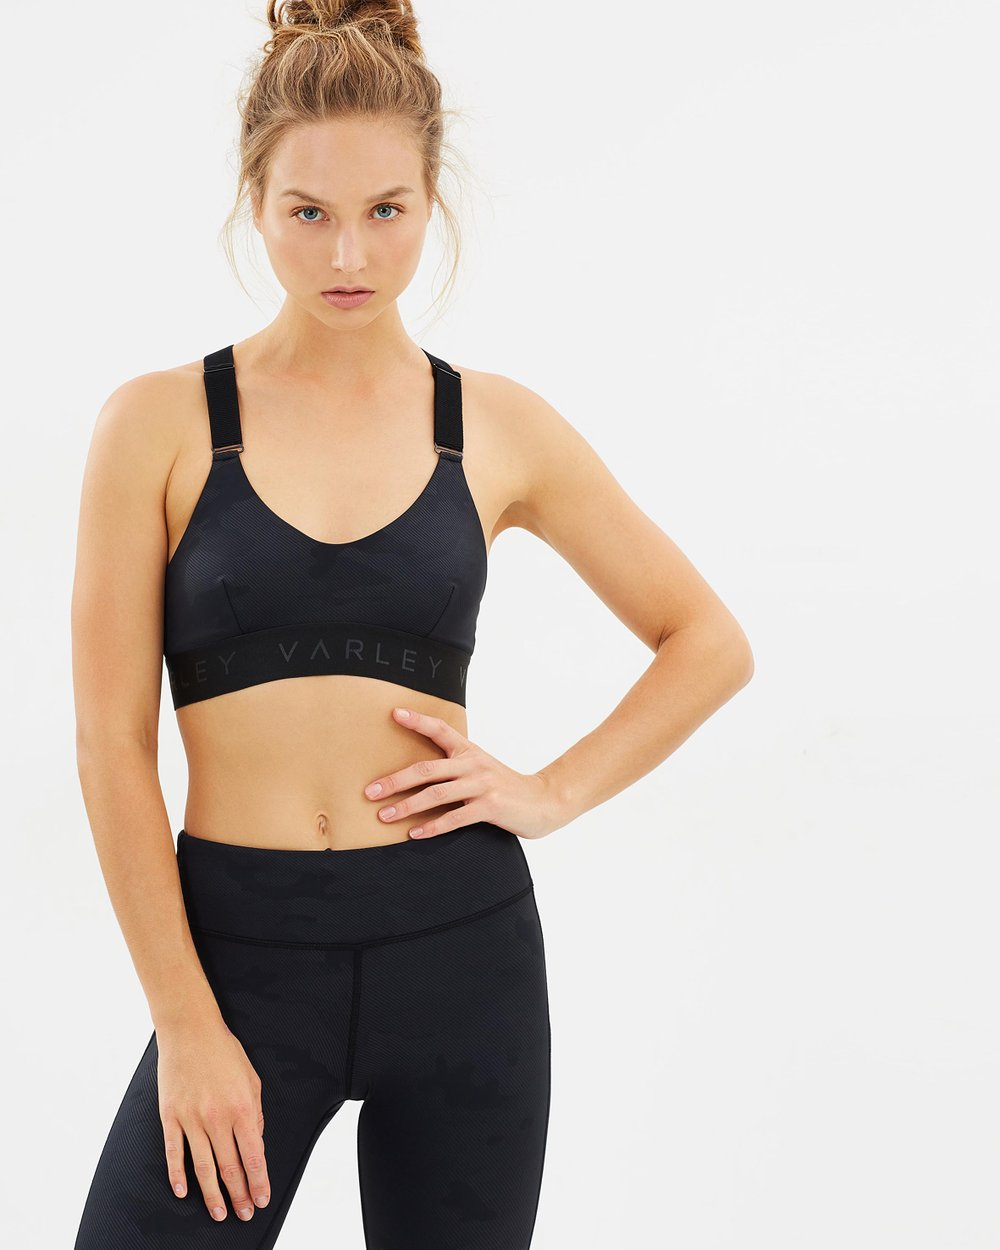 64d5fa5b3be75 Gale Sports Bra by Varley Online